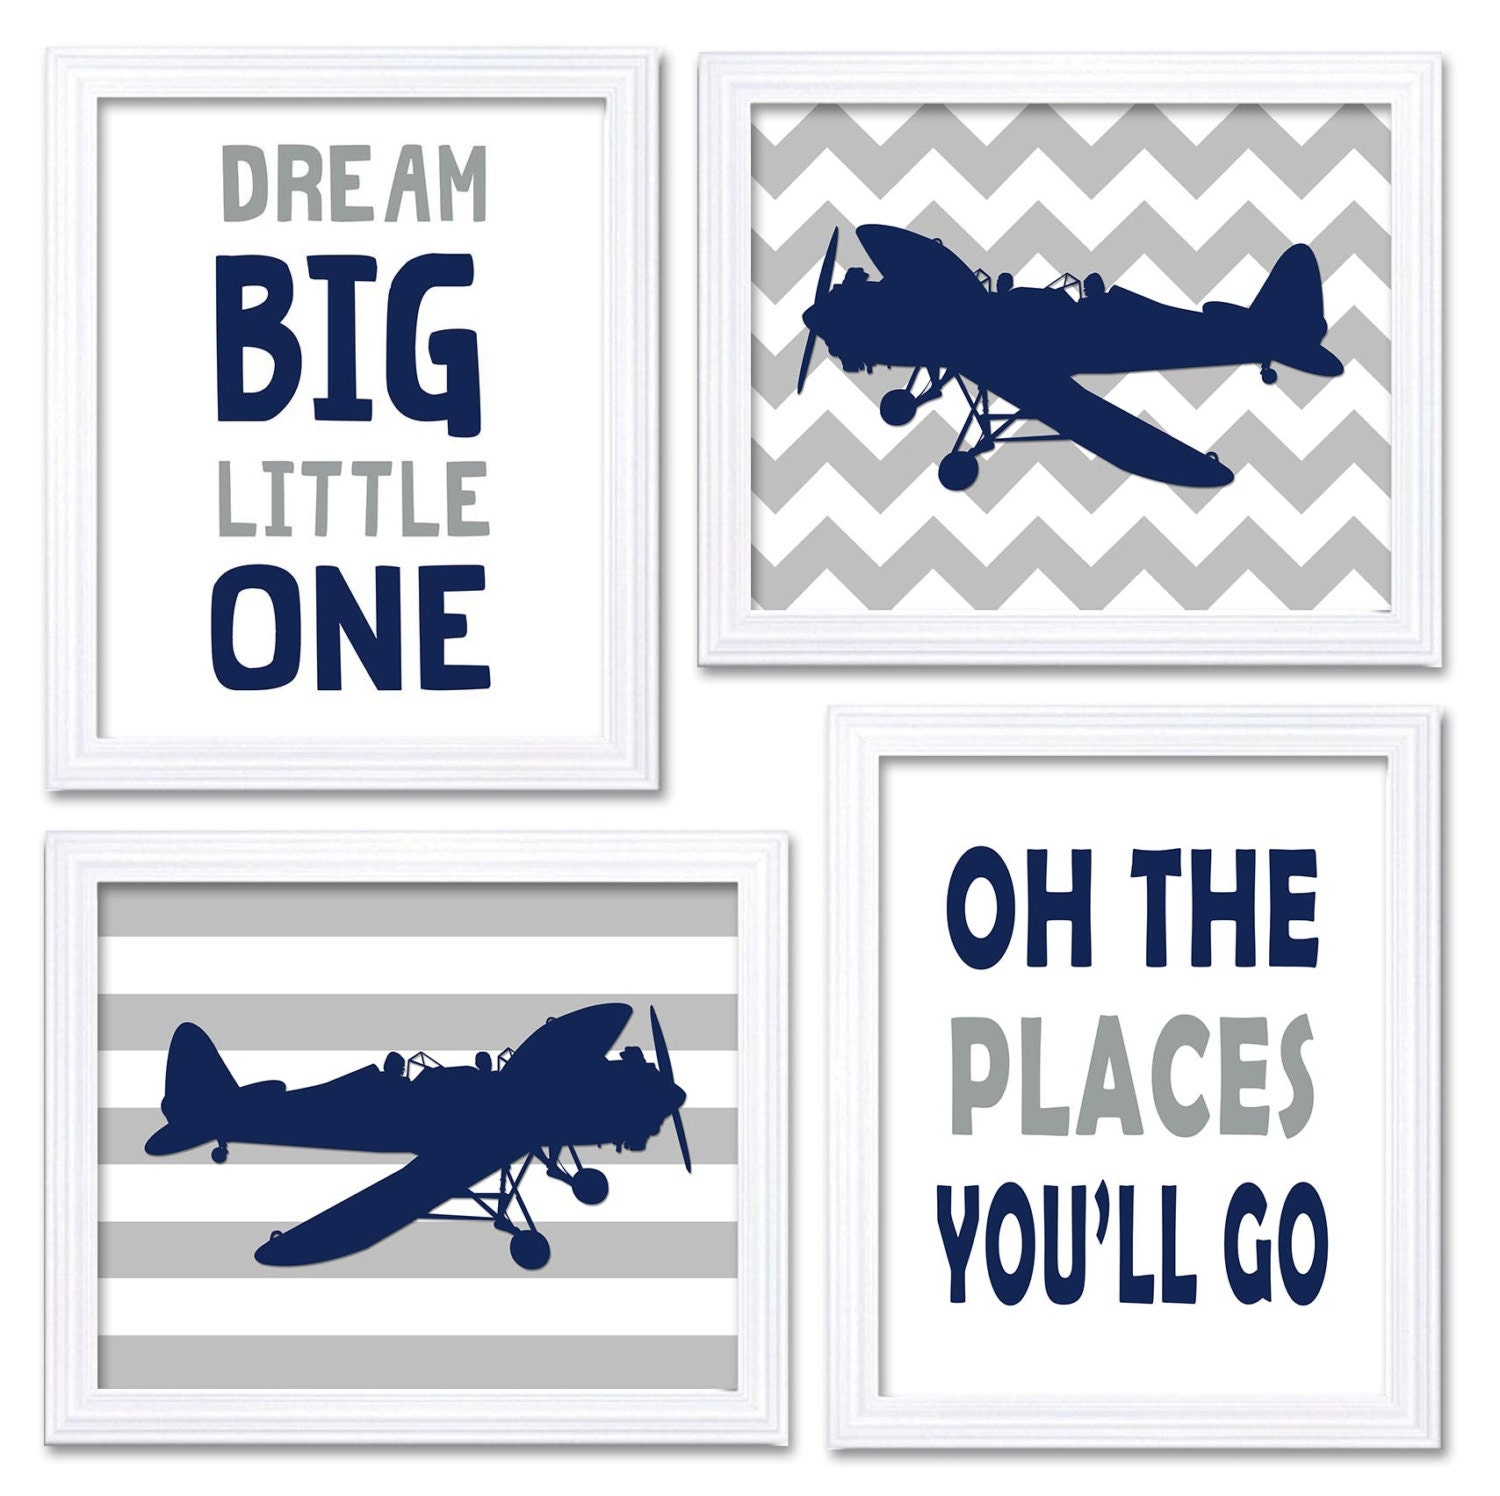 Airplane Nursery Art Navy Grey Nursery Print Set of 4 Transportation Dream Big Little One Oh The Pla